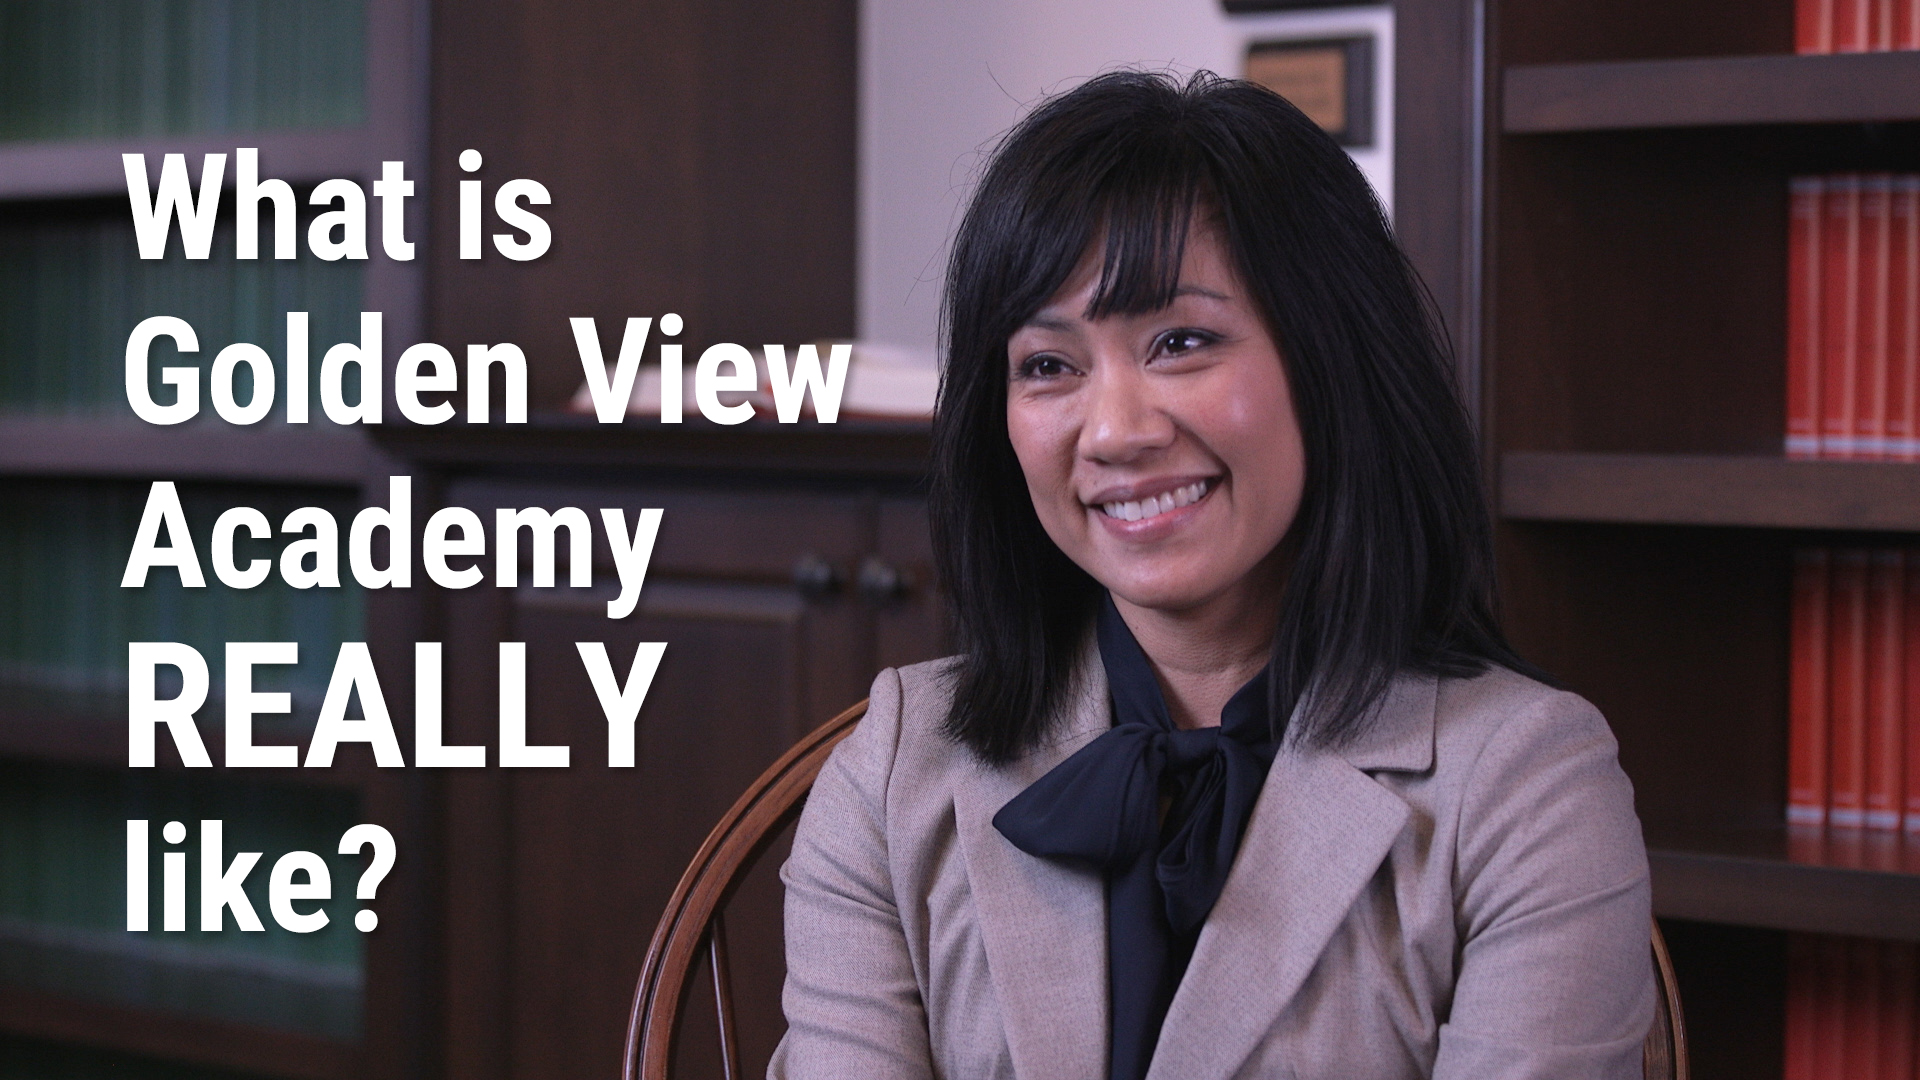 What is Golden View Academy REALLY like?